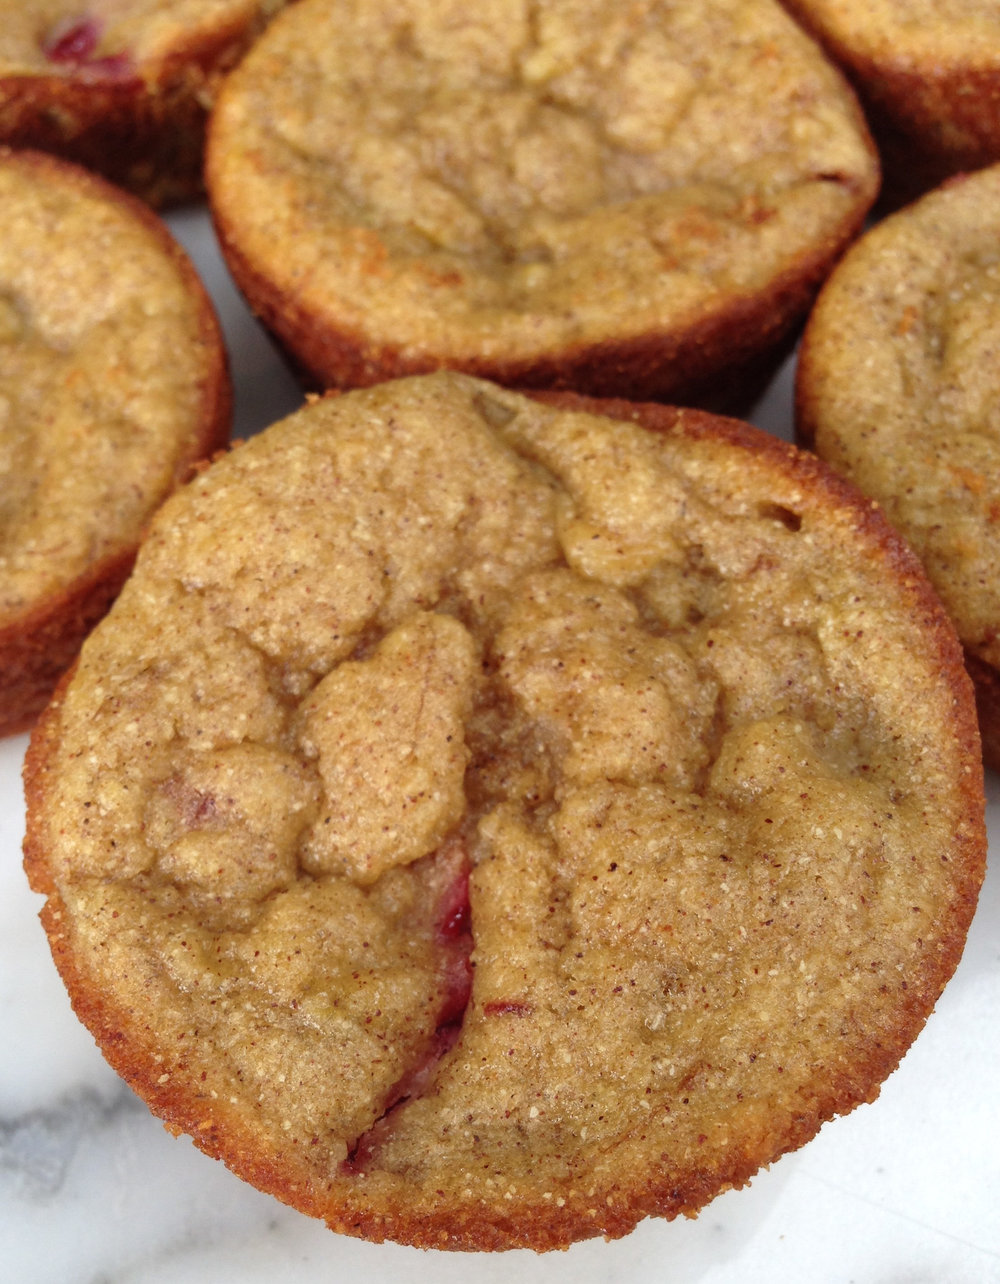 These gluten free, diary free muffins use garbanzo bean flour to add a nutty flavor that perfectly compliments the fruity flavor of the strawberries and bananas.